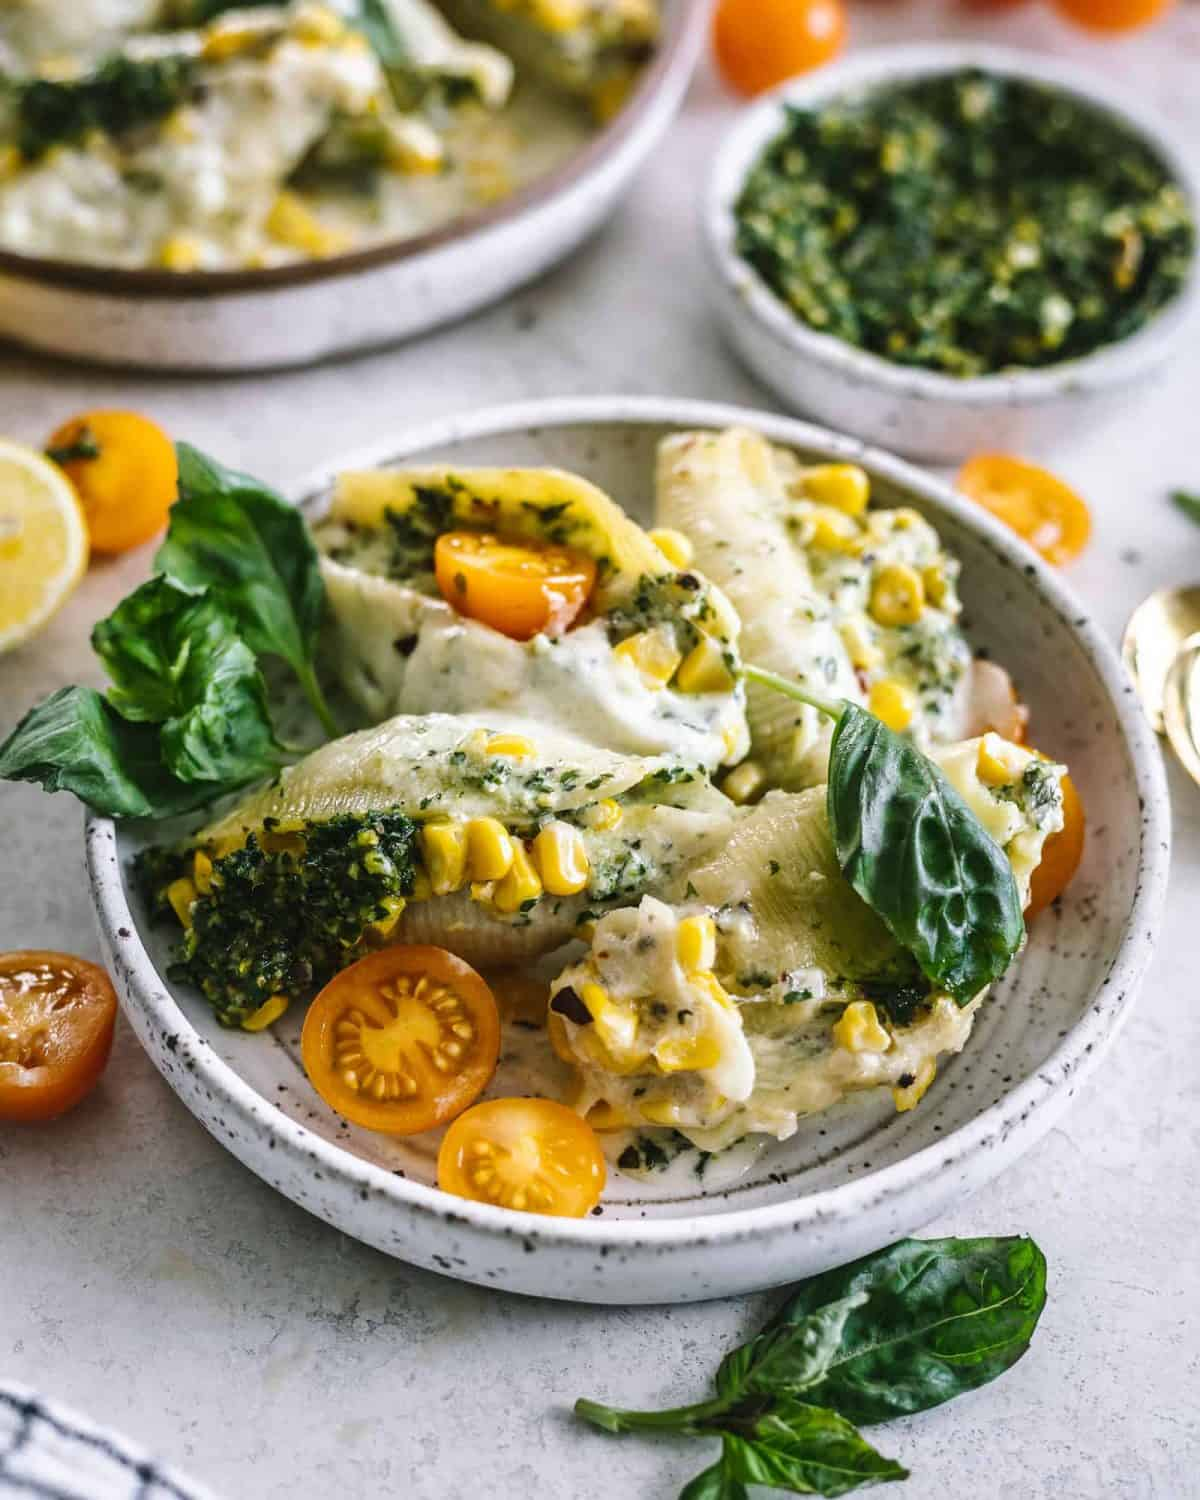 Kale, Pesto and Cheese Stuffed Shells from Britney Breaks Bread